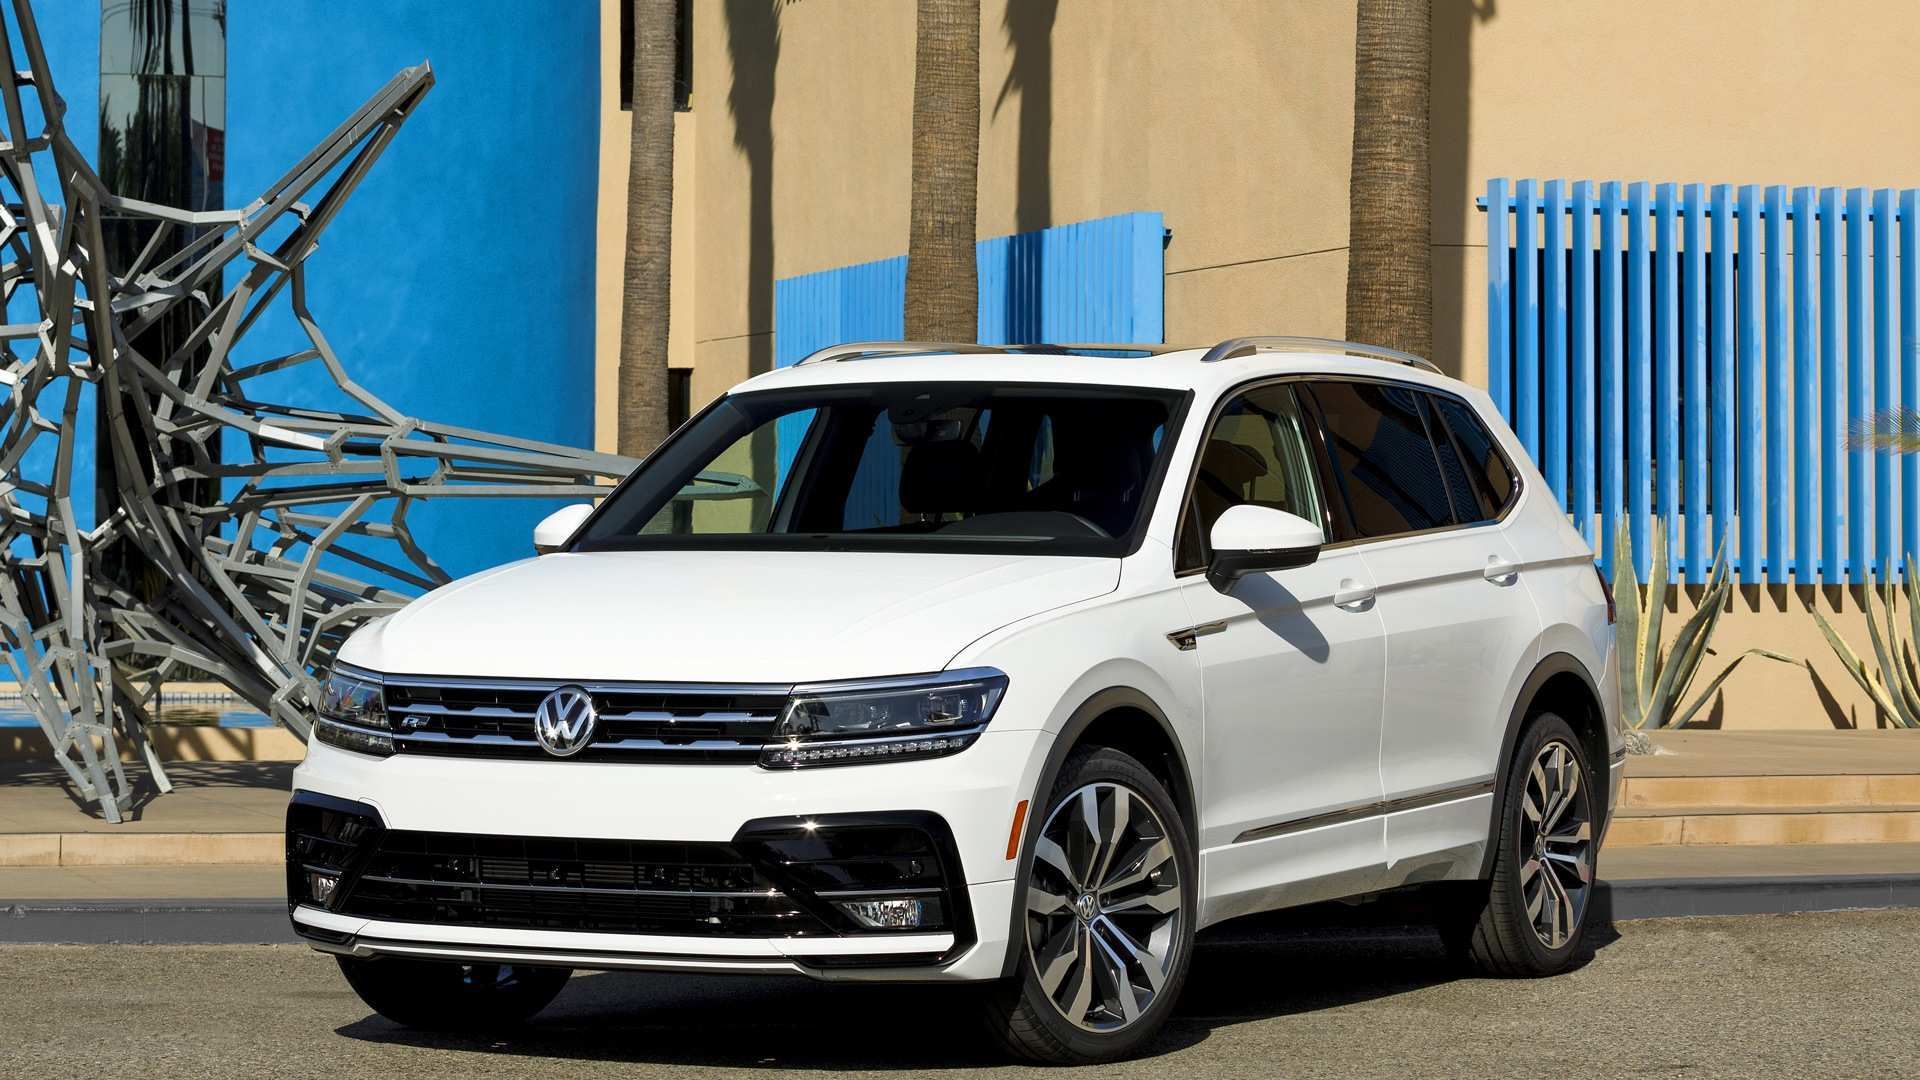 48 Great Best Volkswagen 2019 Tiguan Concept Reviews for Best Volkswagen 2019 Tiguan Concept